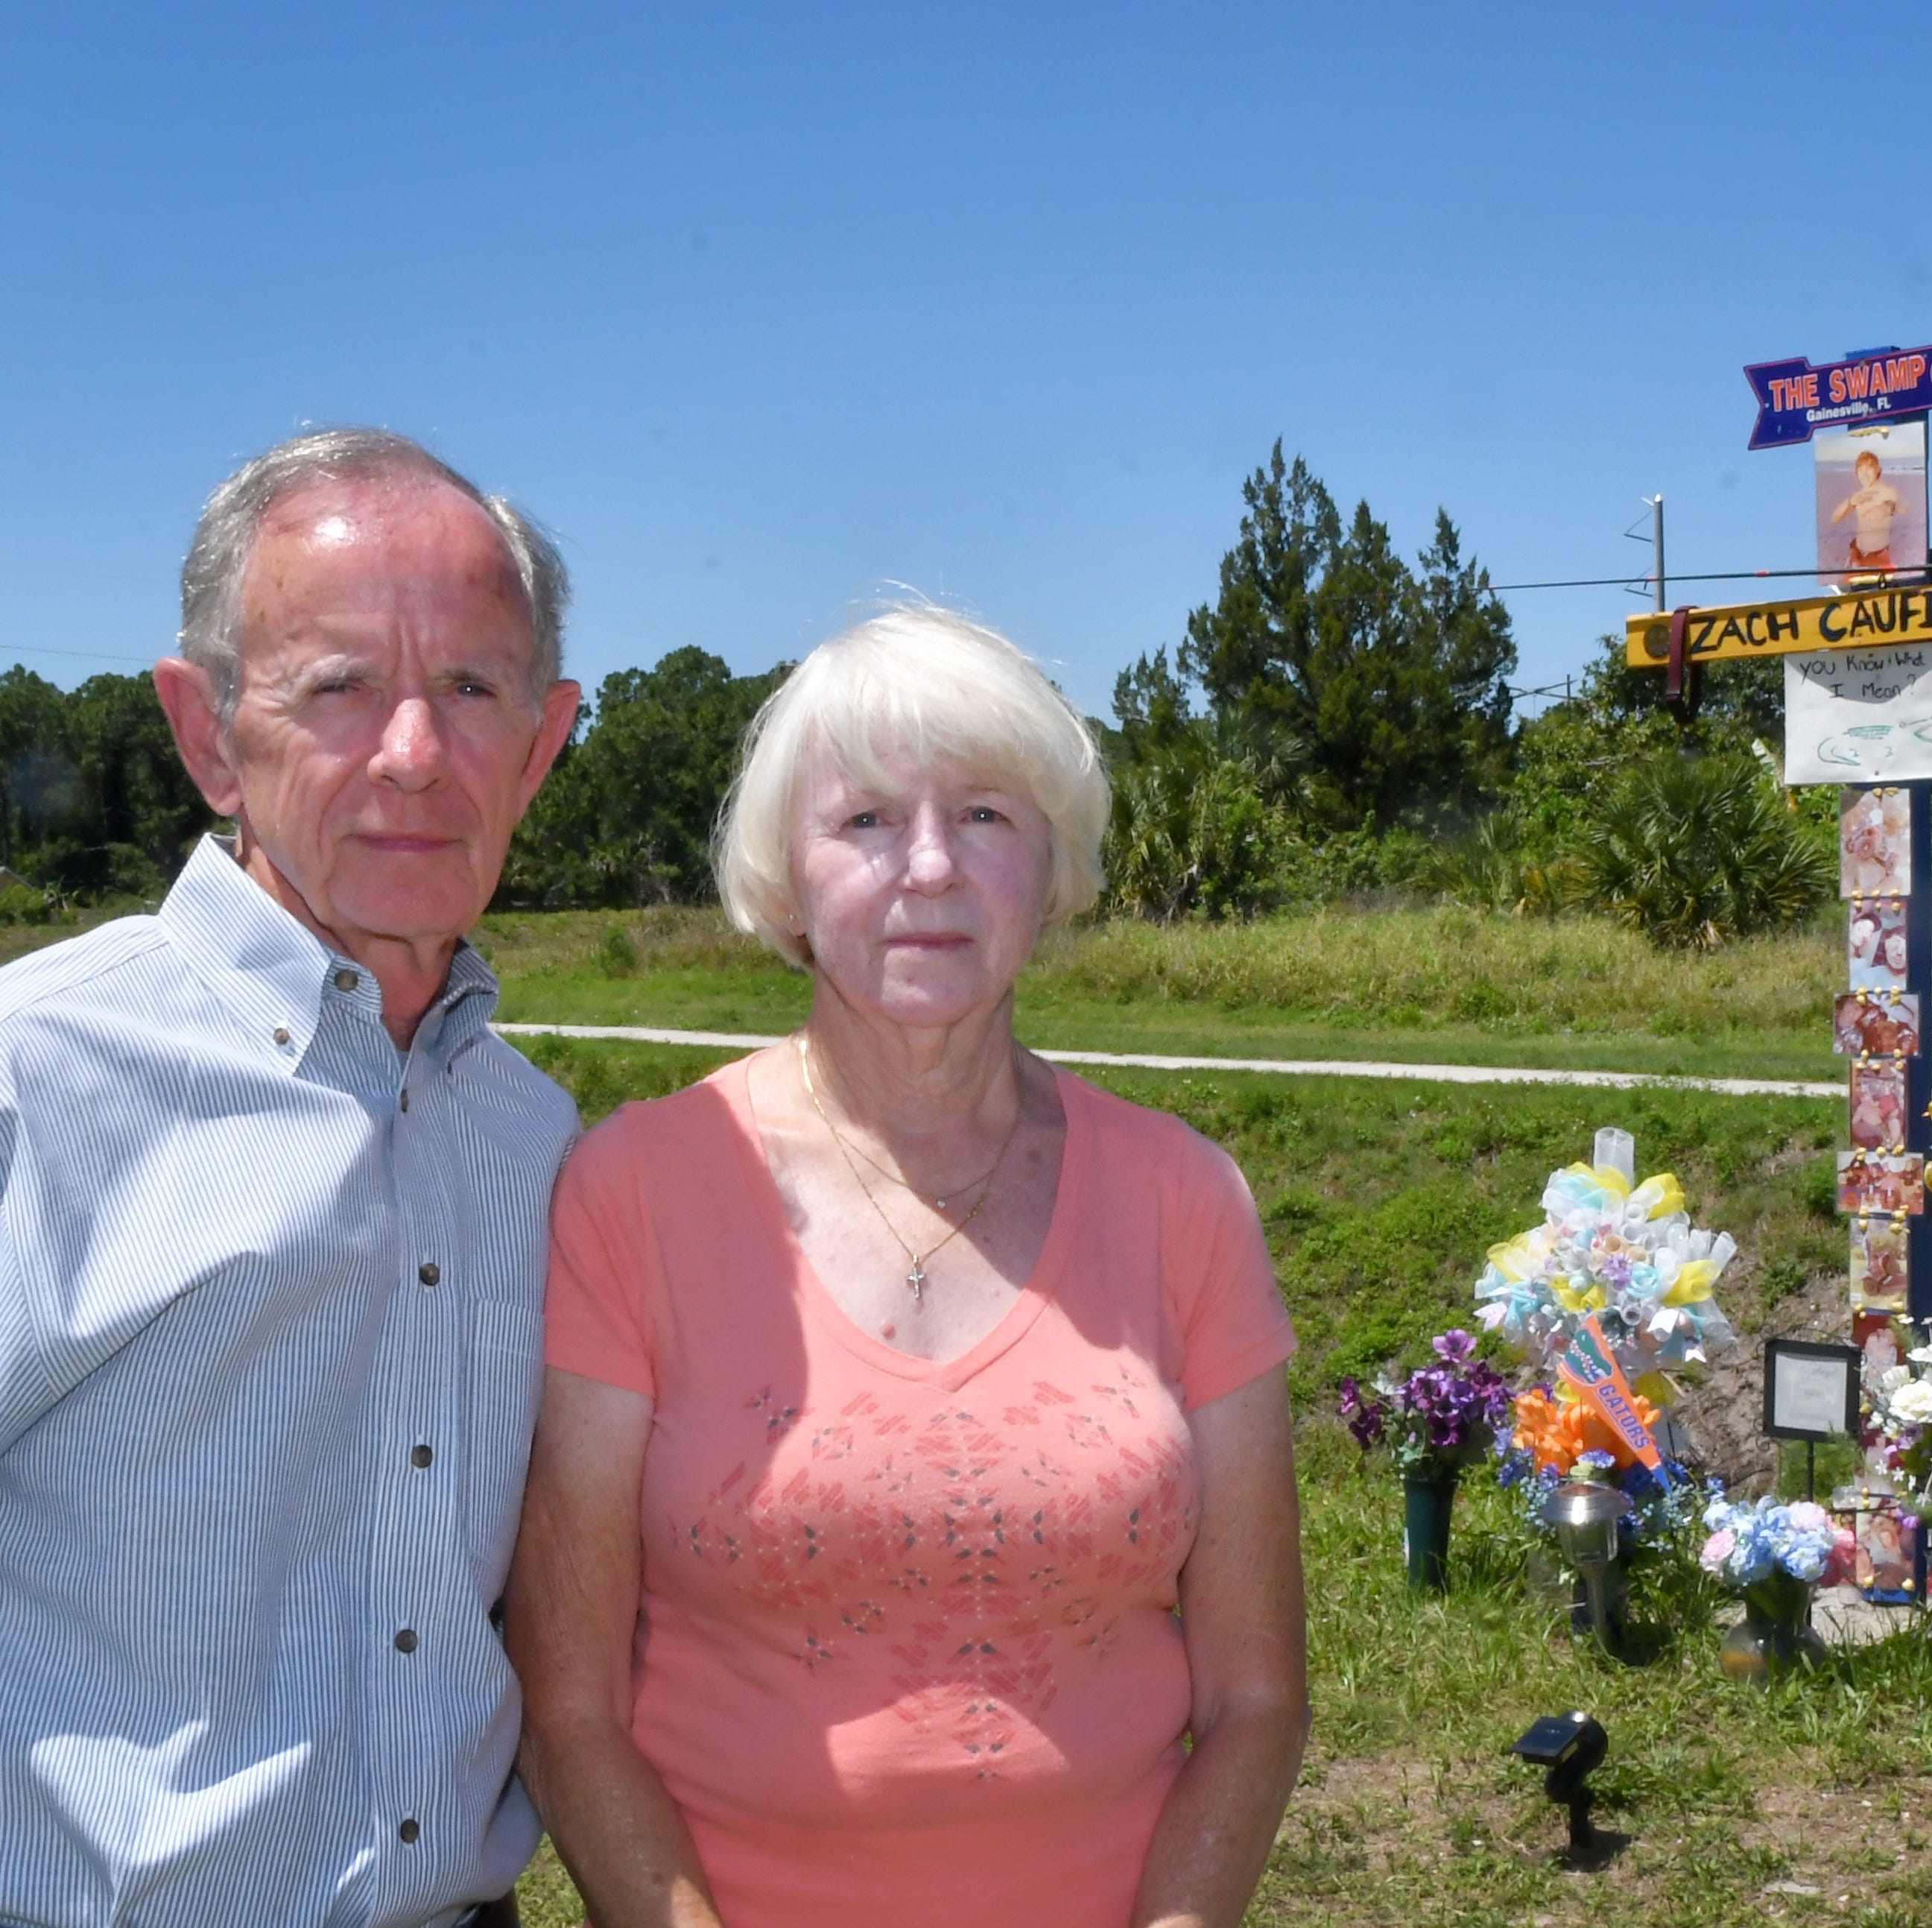 Roadside memorial in Palm Bay draws support, criticism